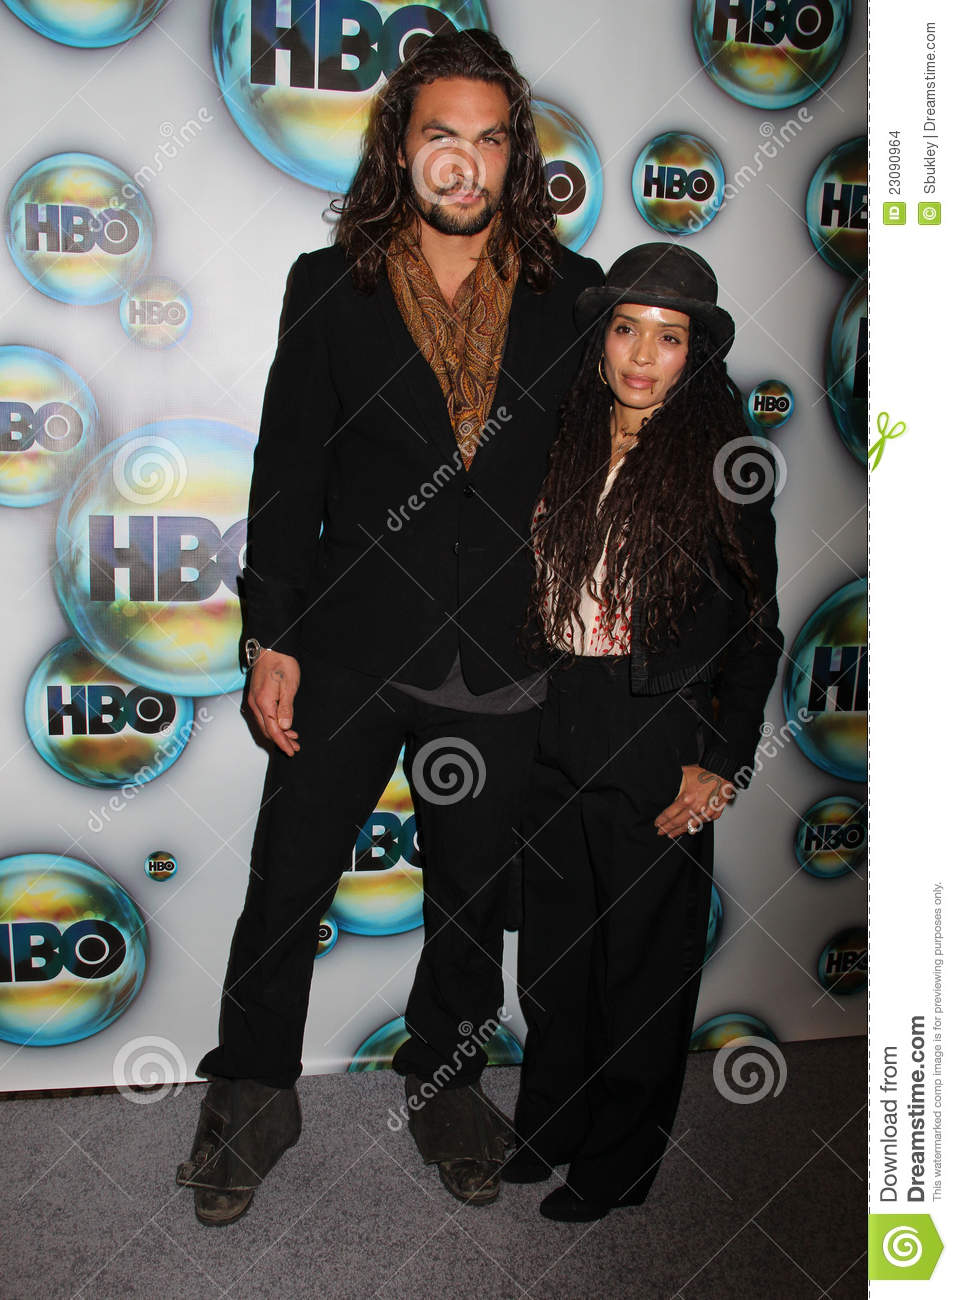 lisa bonet wdwlisa bonet young, lisa bonet jason momoa, lisa bonet daughter, lisa bonet lenny kravitz, lisa bonet style, lisa bonet momoa, lisa bonet tattoos, lisa bonet man, lisa bonet 80s, lisa bonet age, lisa bonet 90s, lisa bonet parents, lisa bonet mother, lisa bonet 1987, lisa bonet interview, lisa bonet instagram, lisa bonet foto, lisa bonet and lenny kravitz relationship, lisa bonet photos, lisa bonet wdw